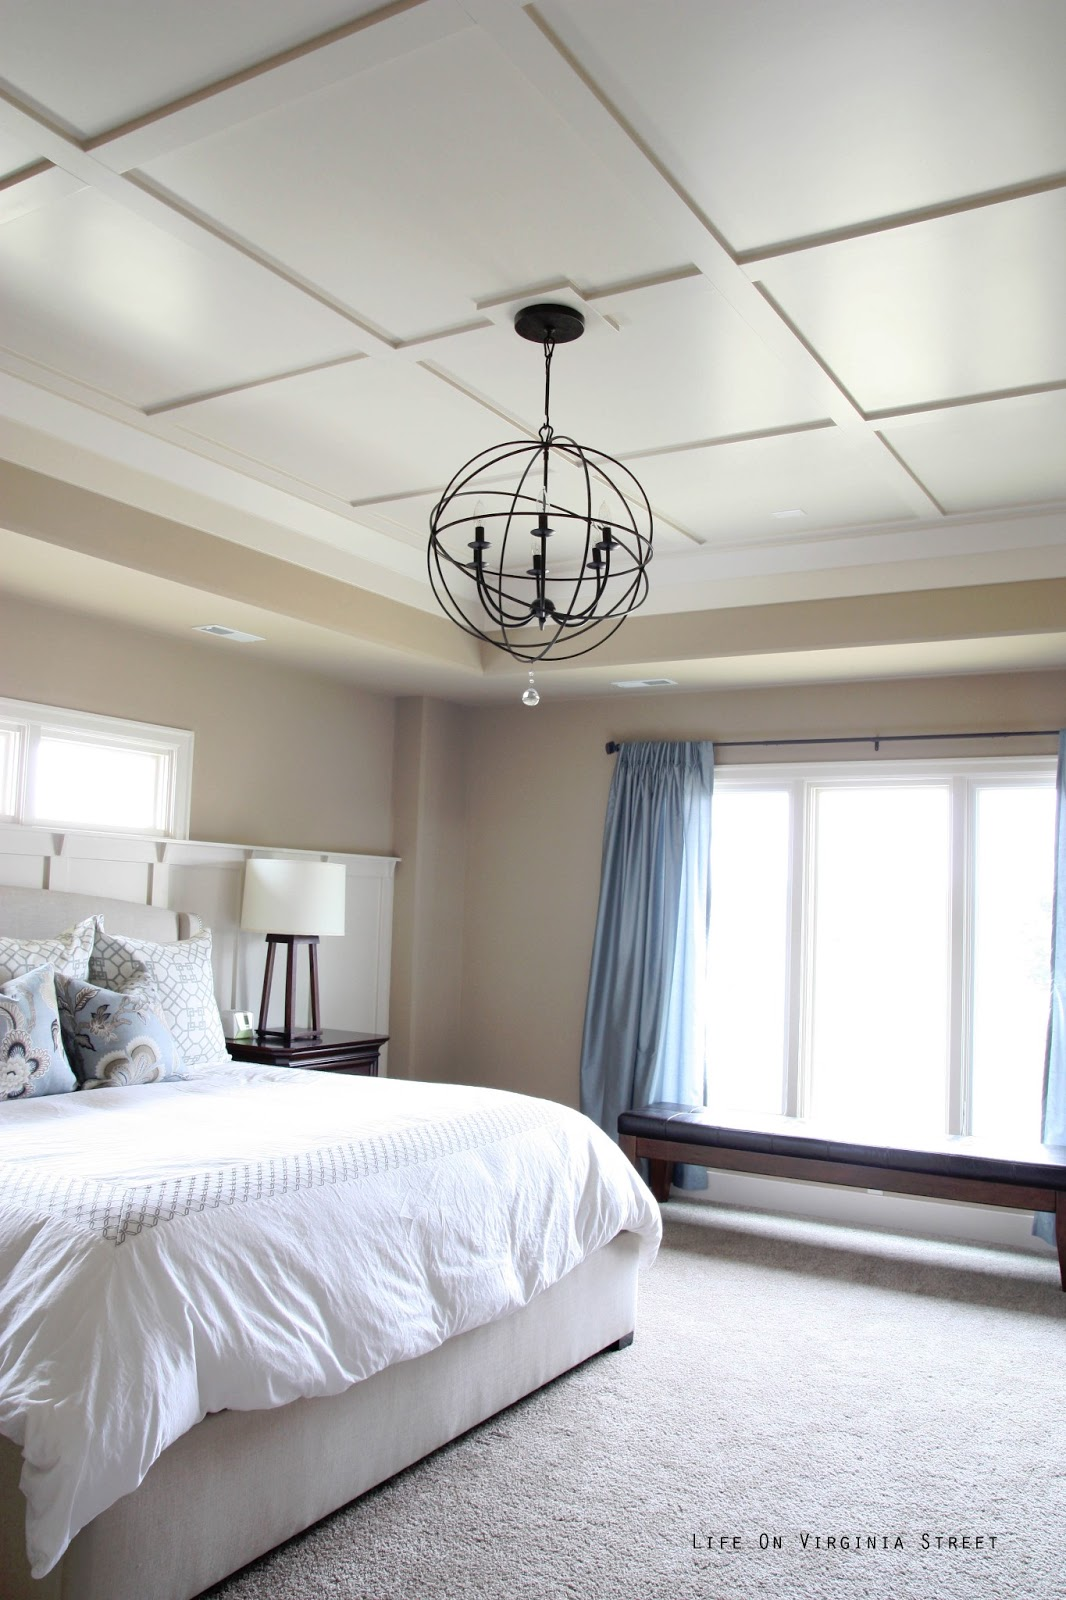 What Are Tray Ceilings: 10 Stylish And Unique Tray Ceilings For Any Room